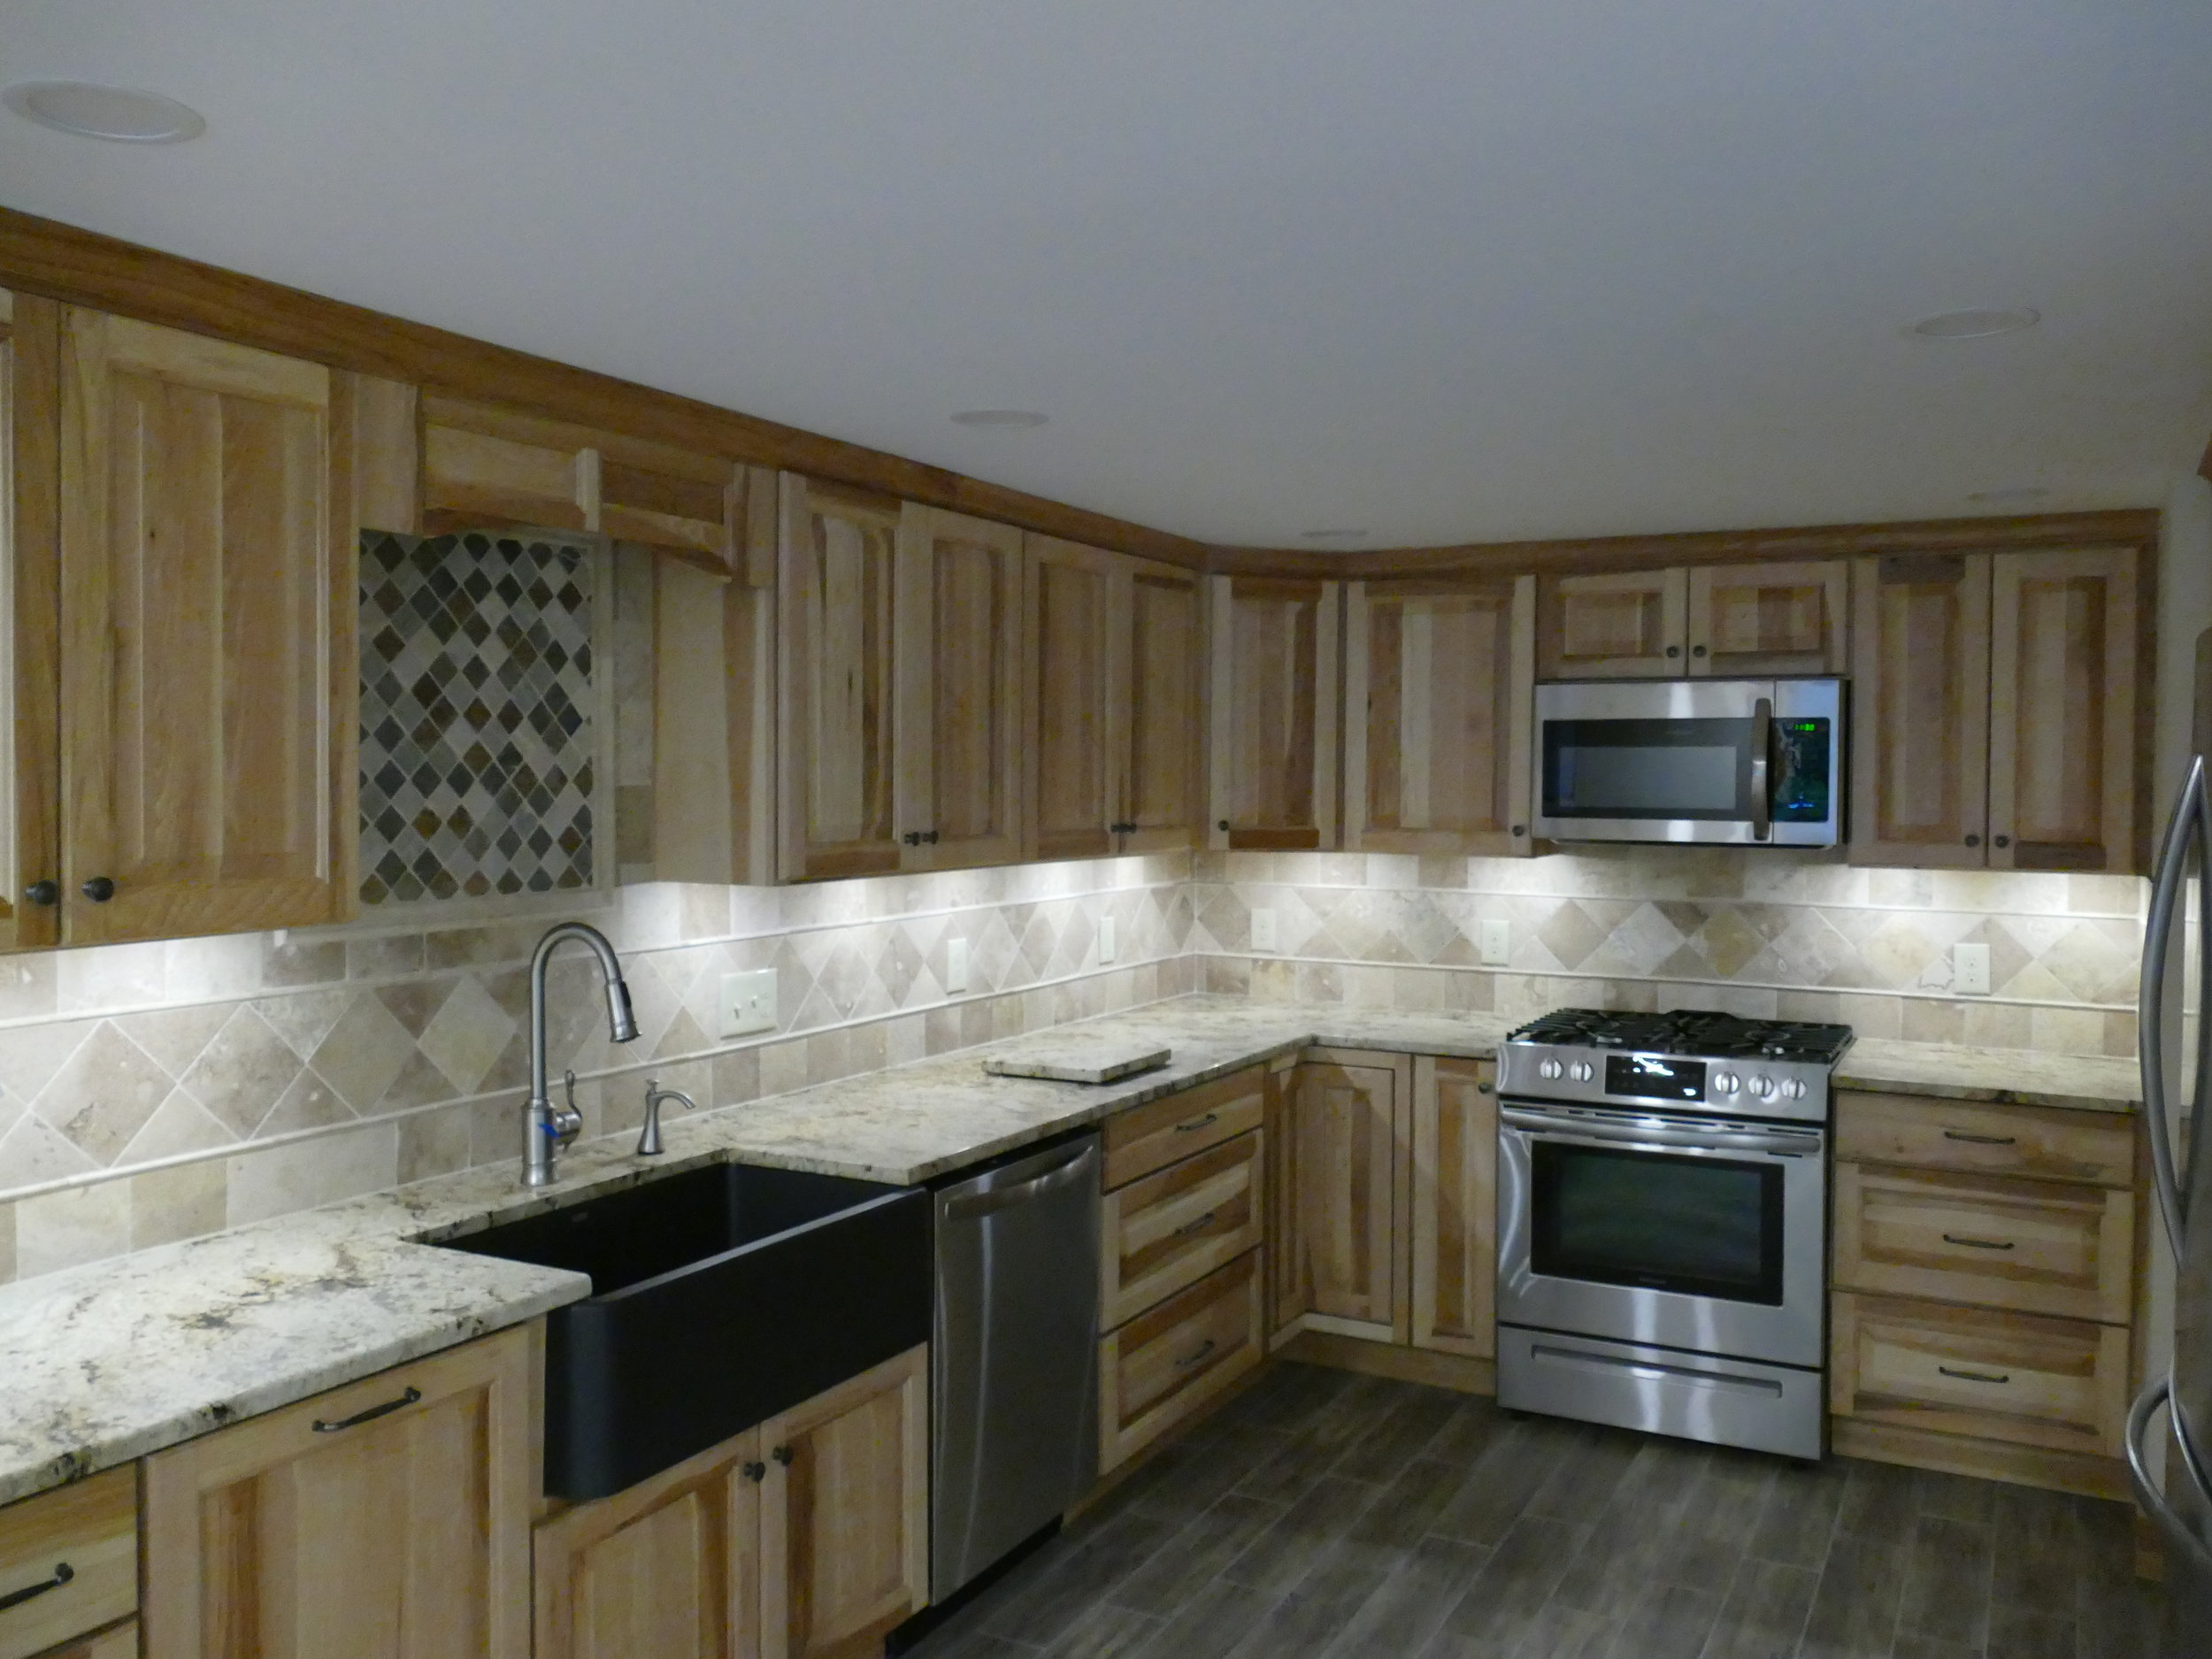 Kitchen Remodel - - Cabinets, back splash, counters, appliances